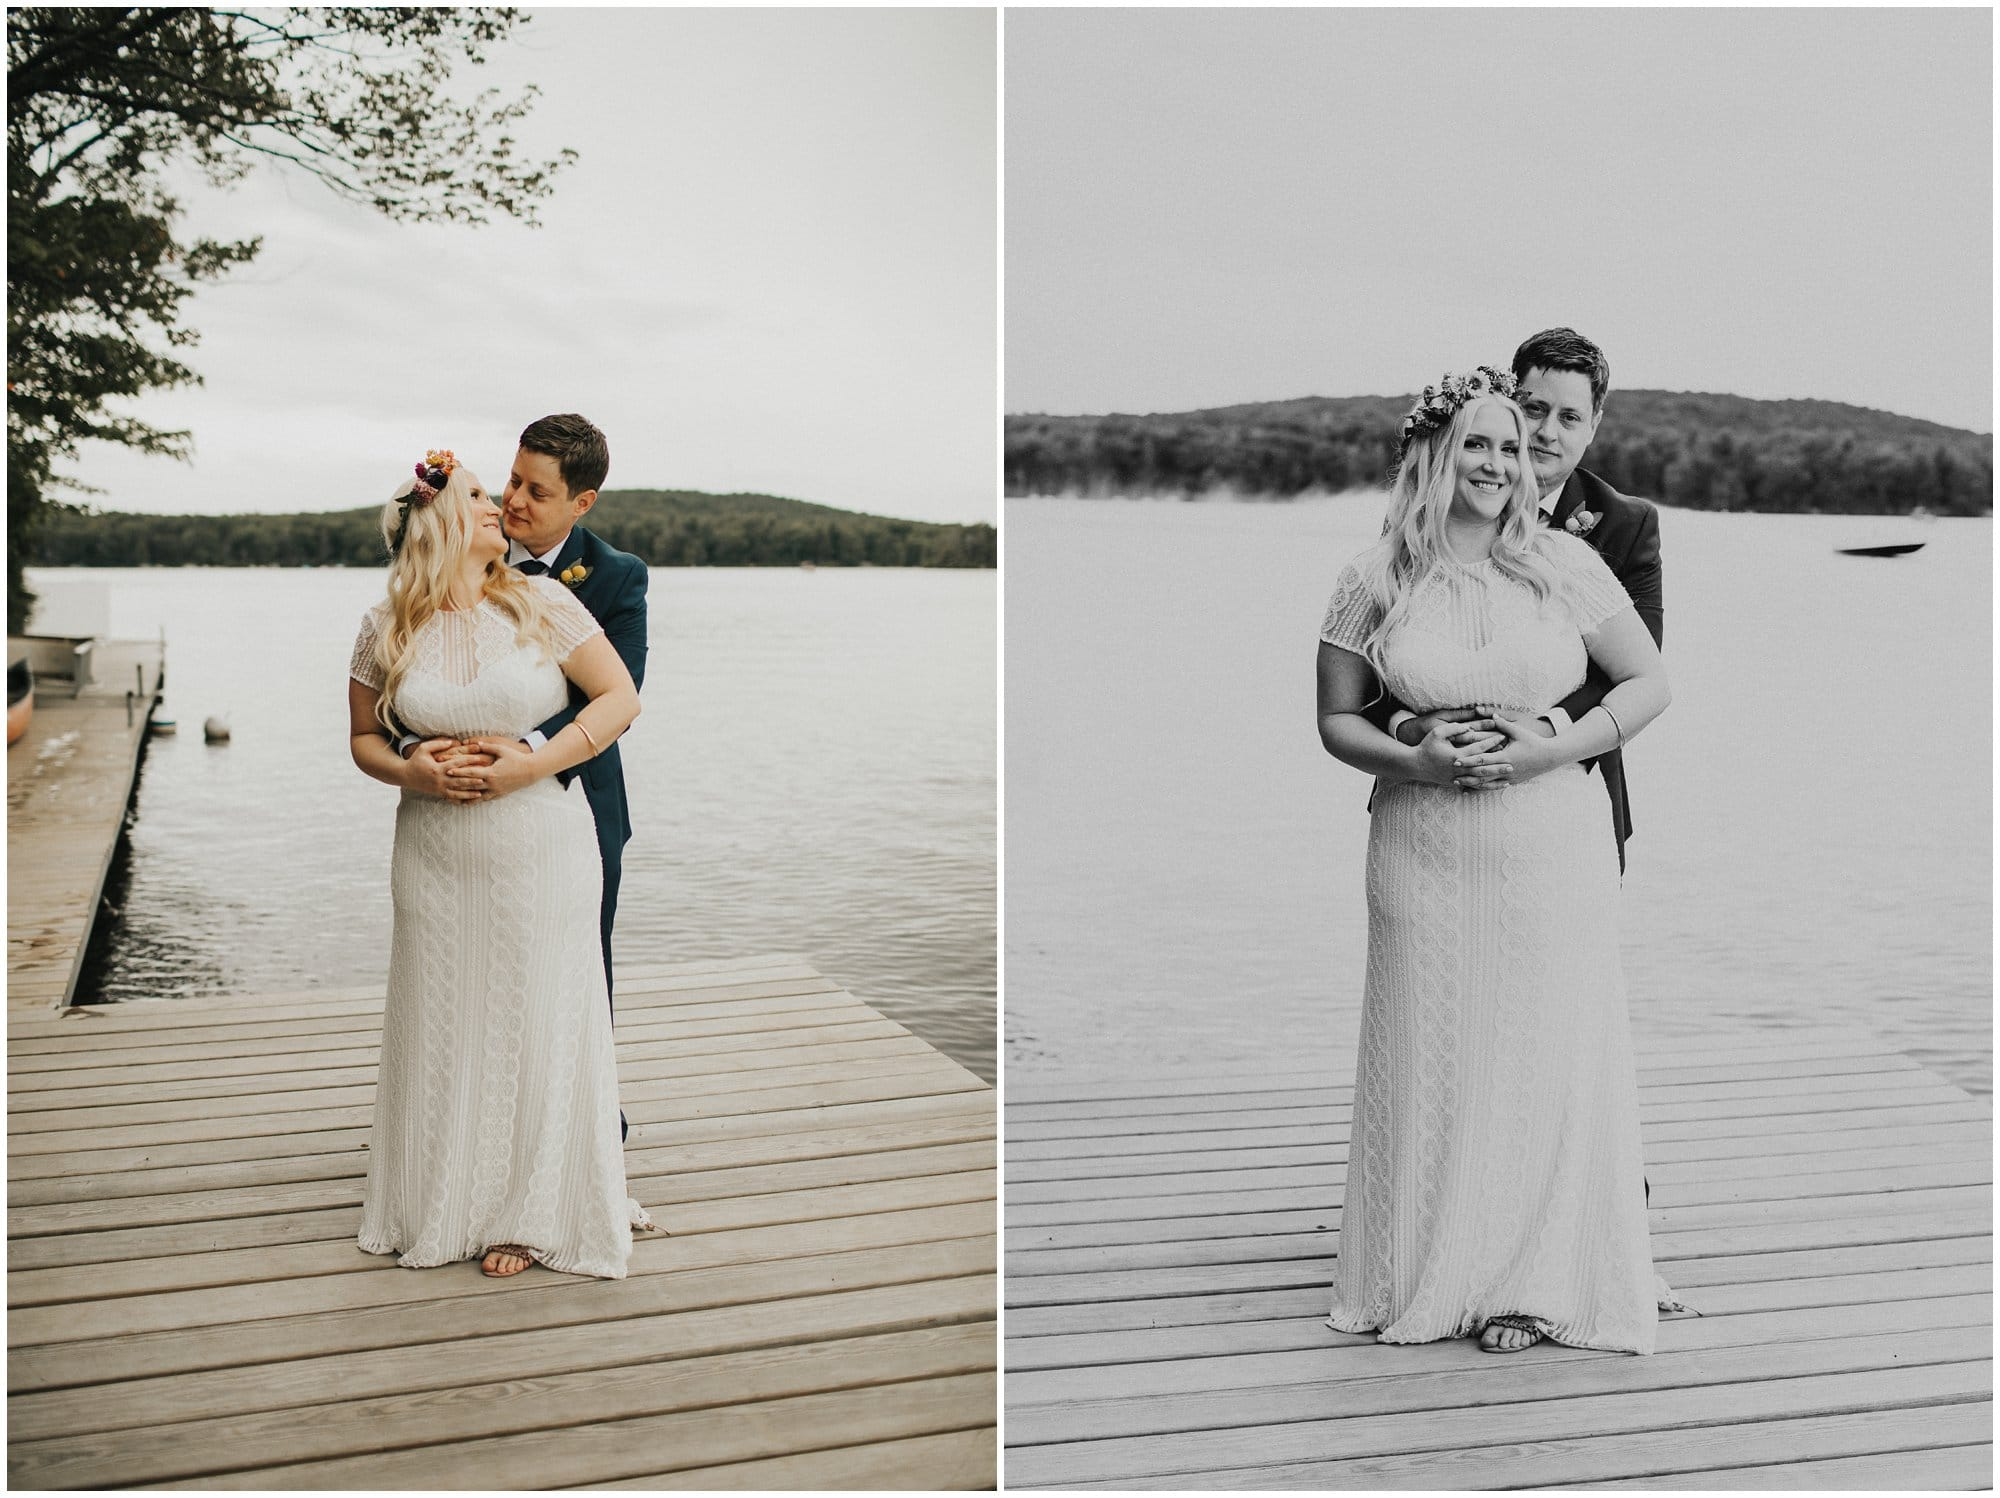 Campground Wedding at Camp Oneka in Tafton, Pennsylvania